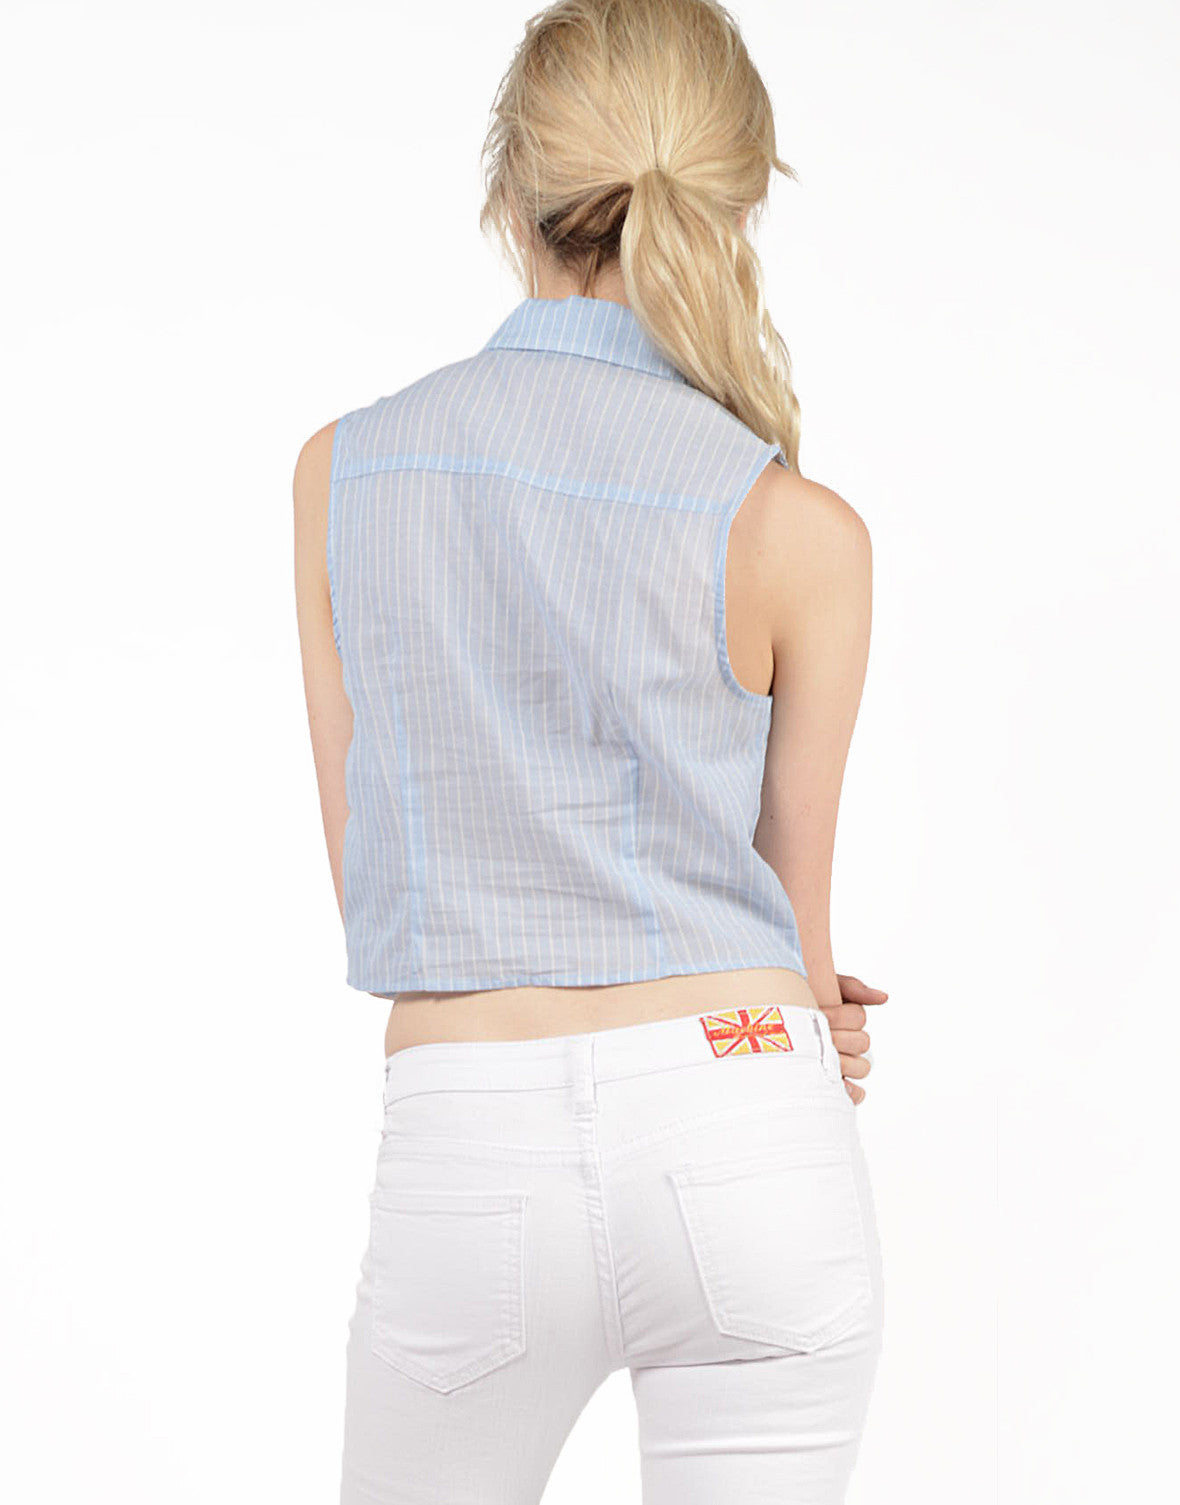 Back View of Linen Striped Blouse